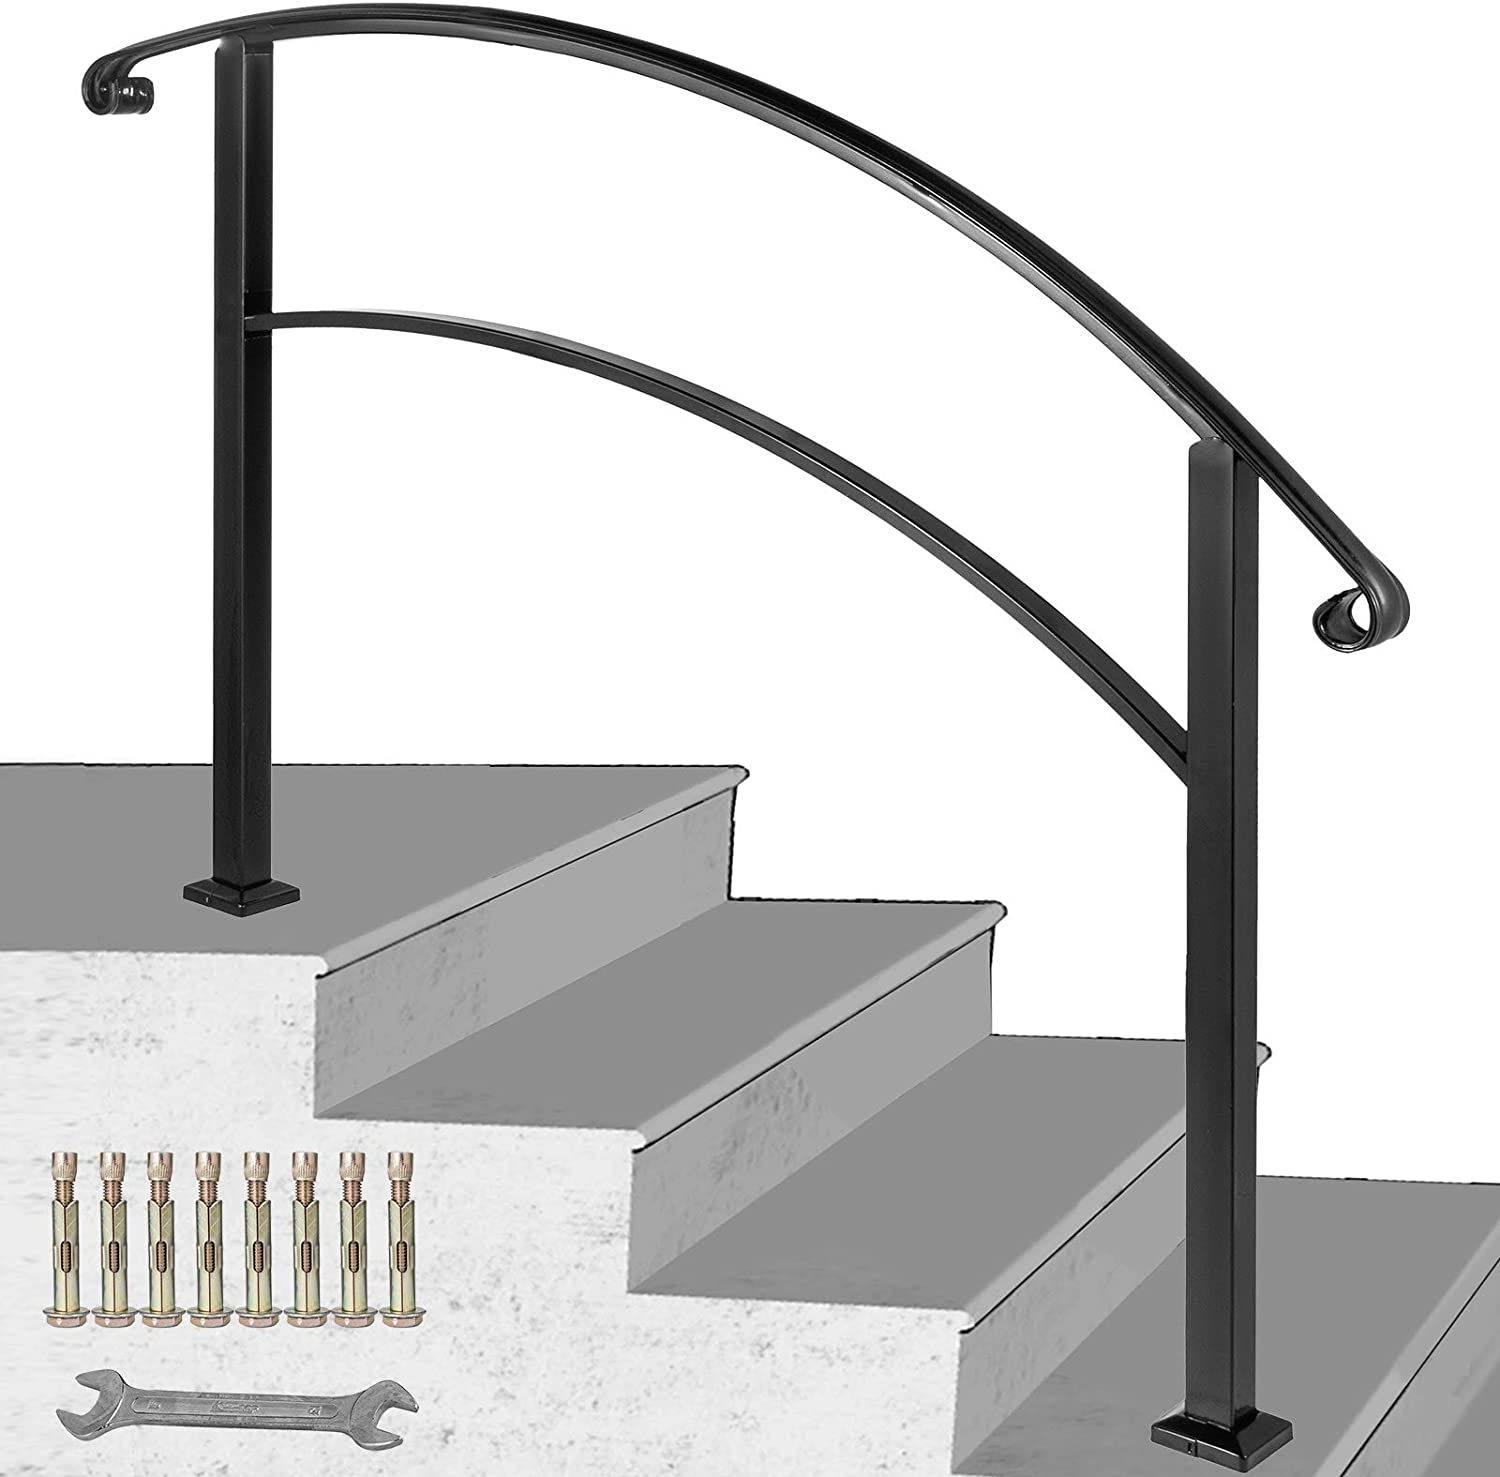 Happybuy 4 Step Handrail Fits 1 Or 4 Steps Matte Black Stair Rail | Outdoor Iron Stair Railing | Garden | Flat Iron | Decorative | Deck | Rustic